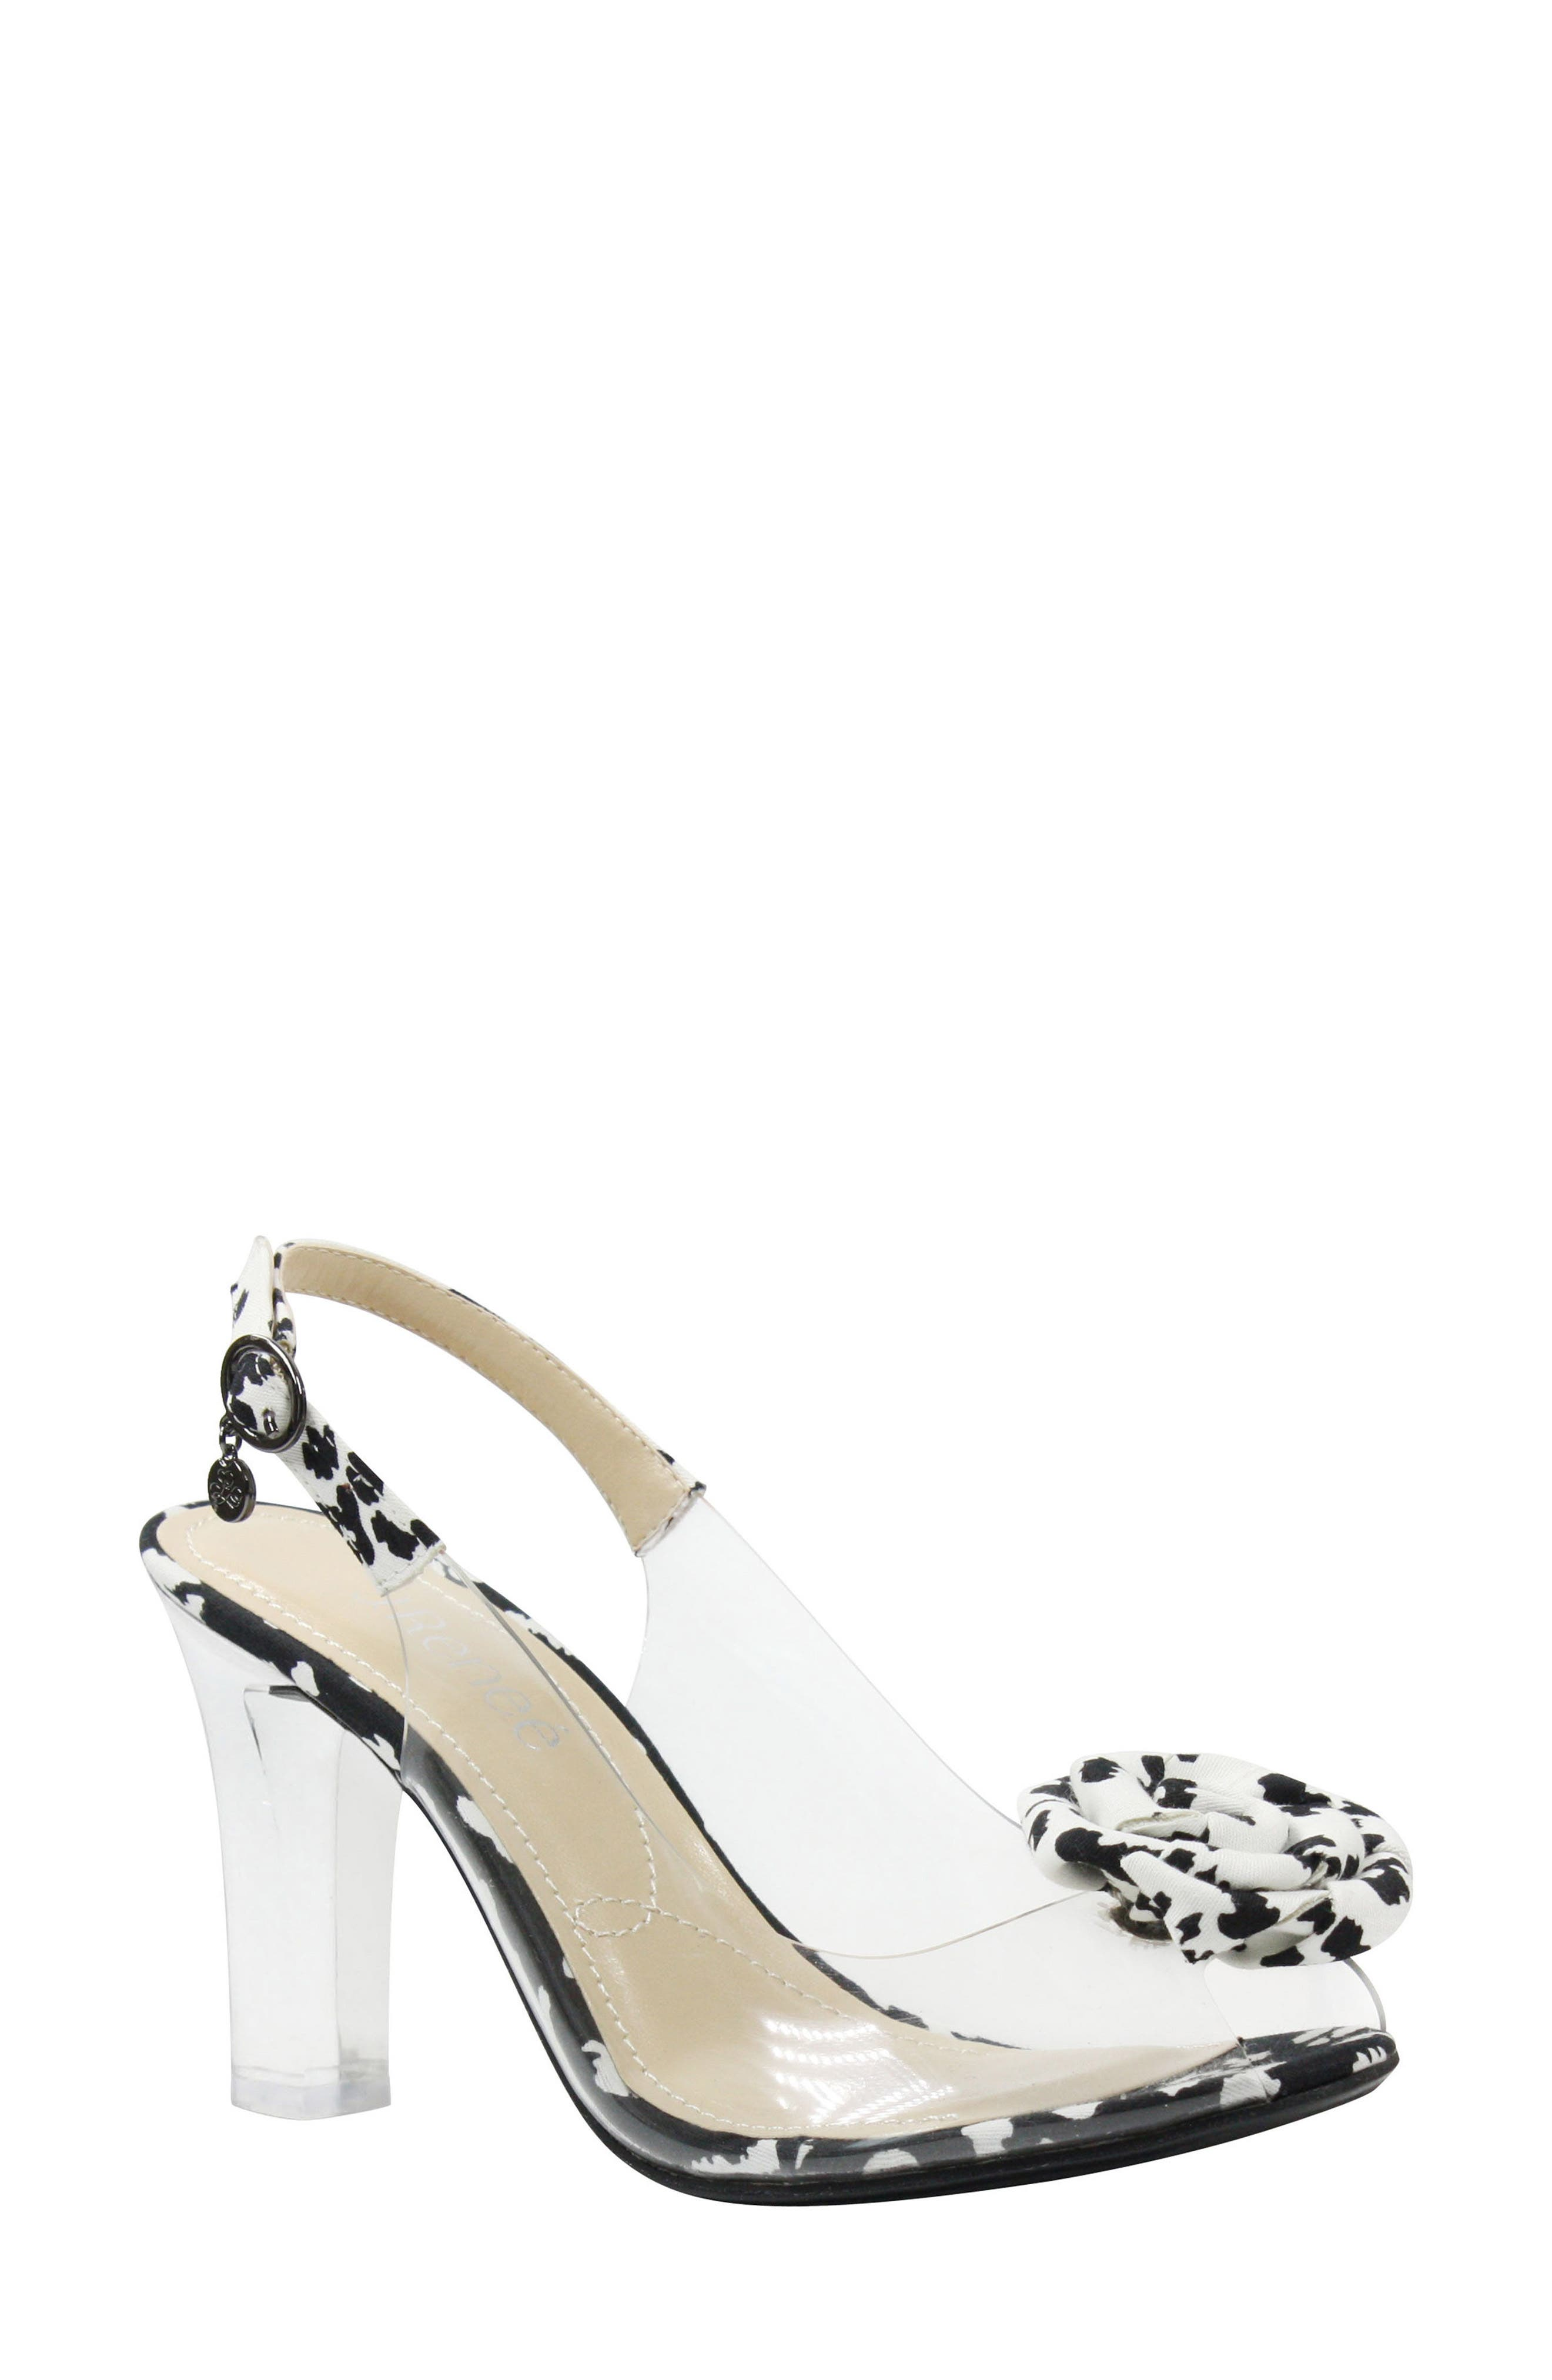 J. RENEÉ Adoracion Slingback Sandal, Main, color, CLEAR/ BLACK/ WHITE